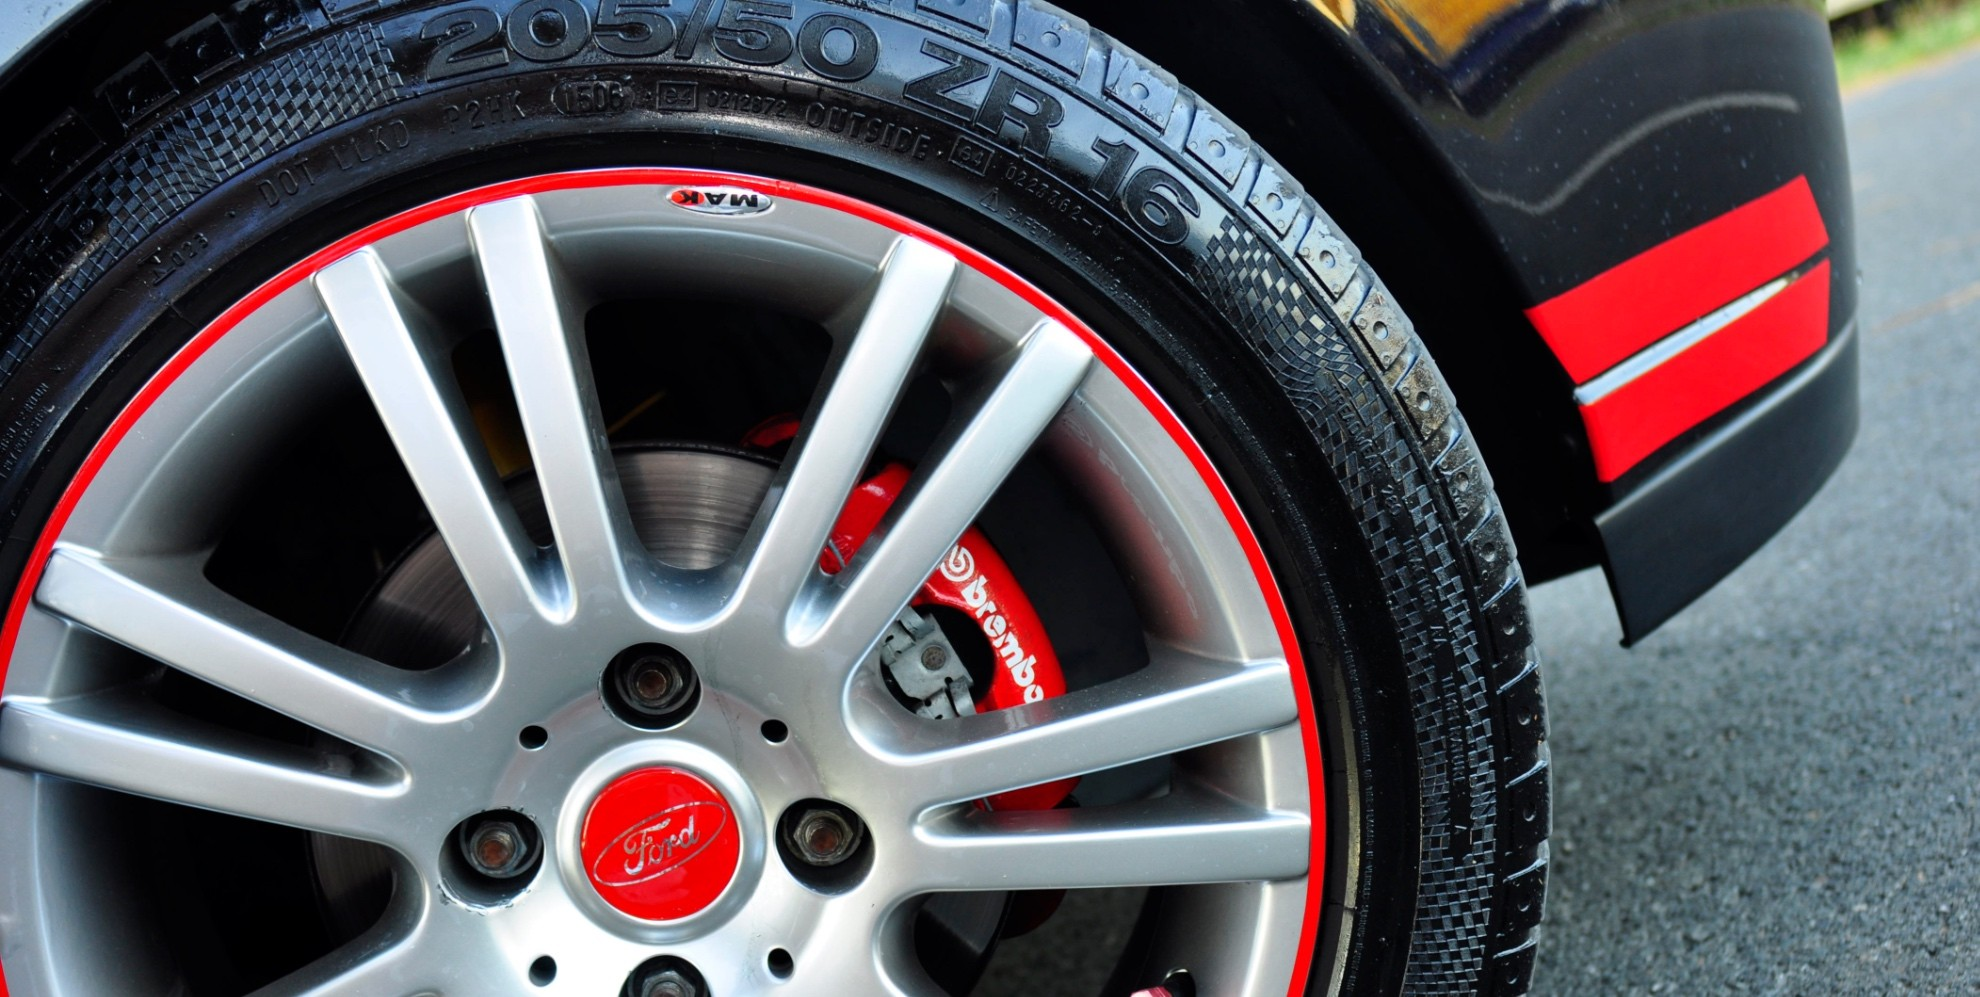 Wheels And Tires What Plus Sizing Is And What It Does To Your Car - Rim websites that show your car